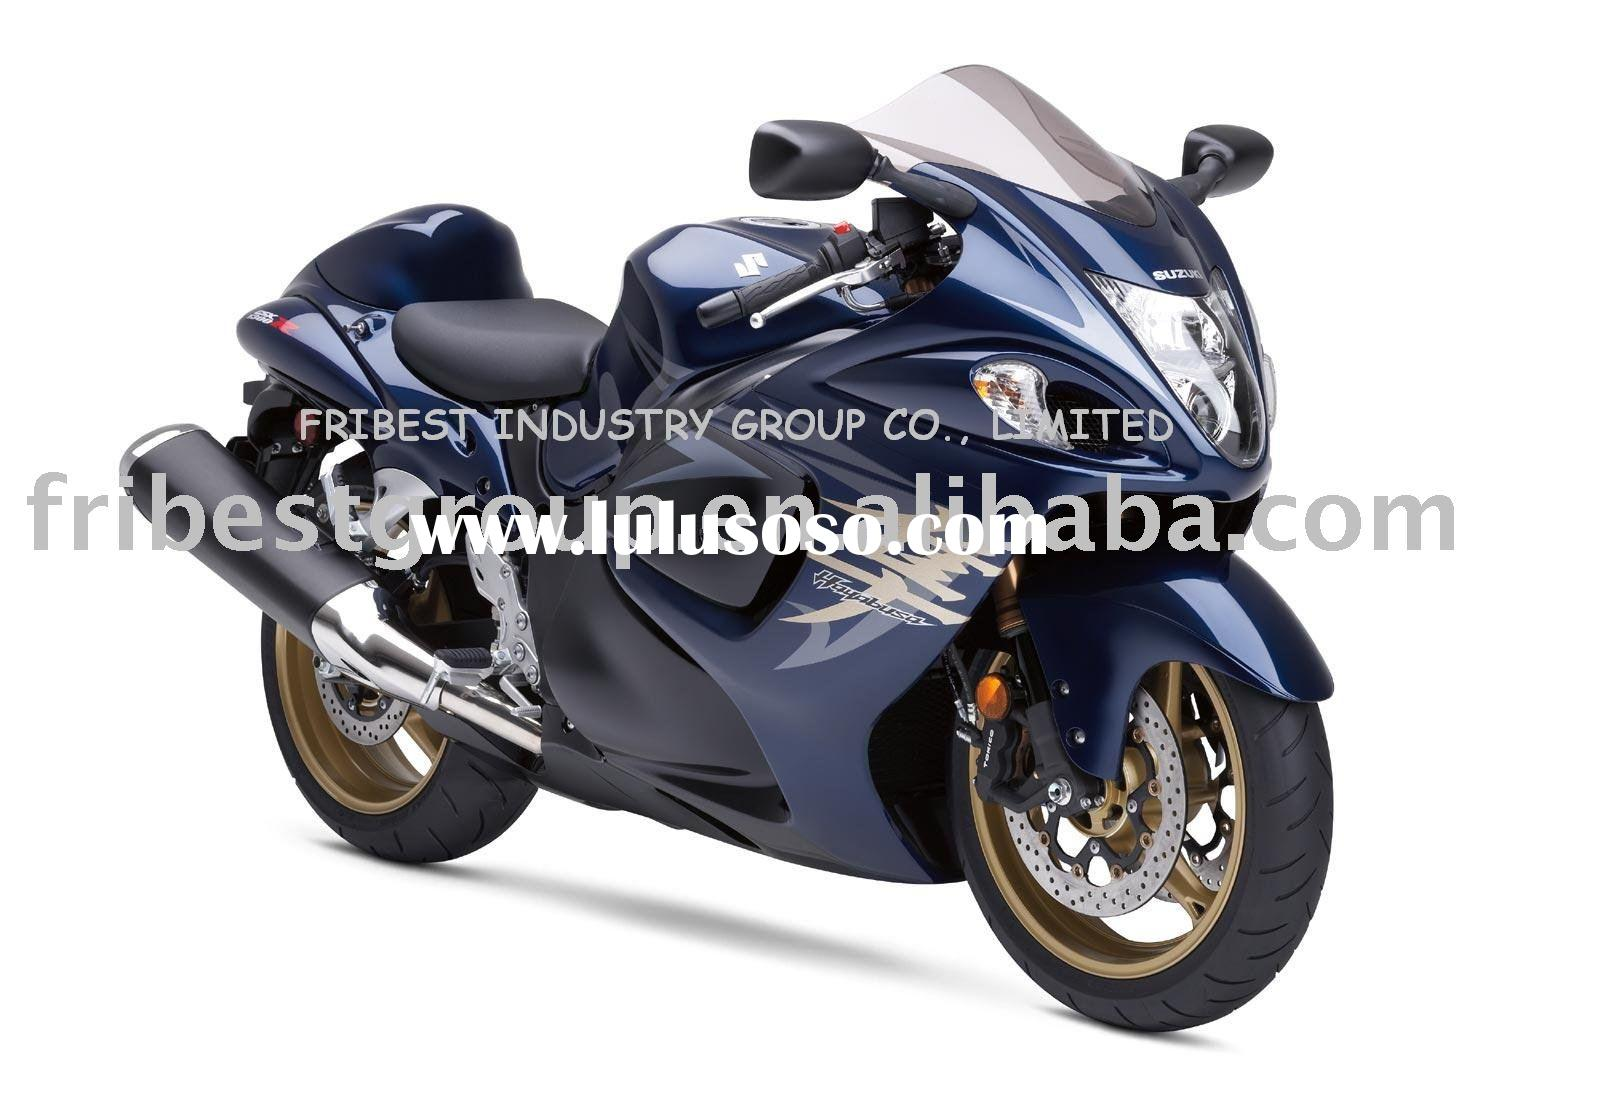 Aftermarket Motorcycle Fairings fairing kit for GSXR 1300 HAYABUSA 2008 2009